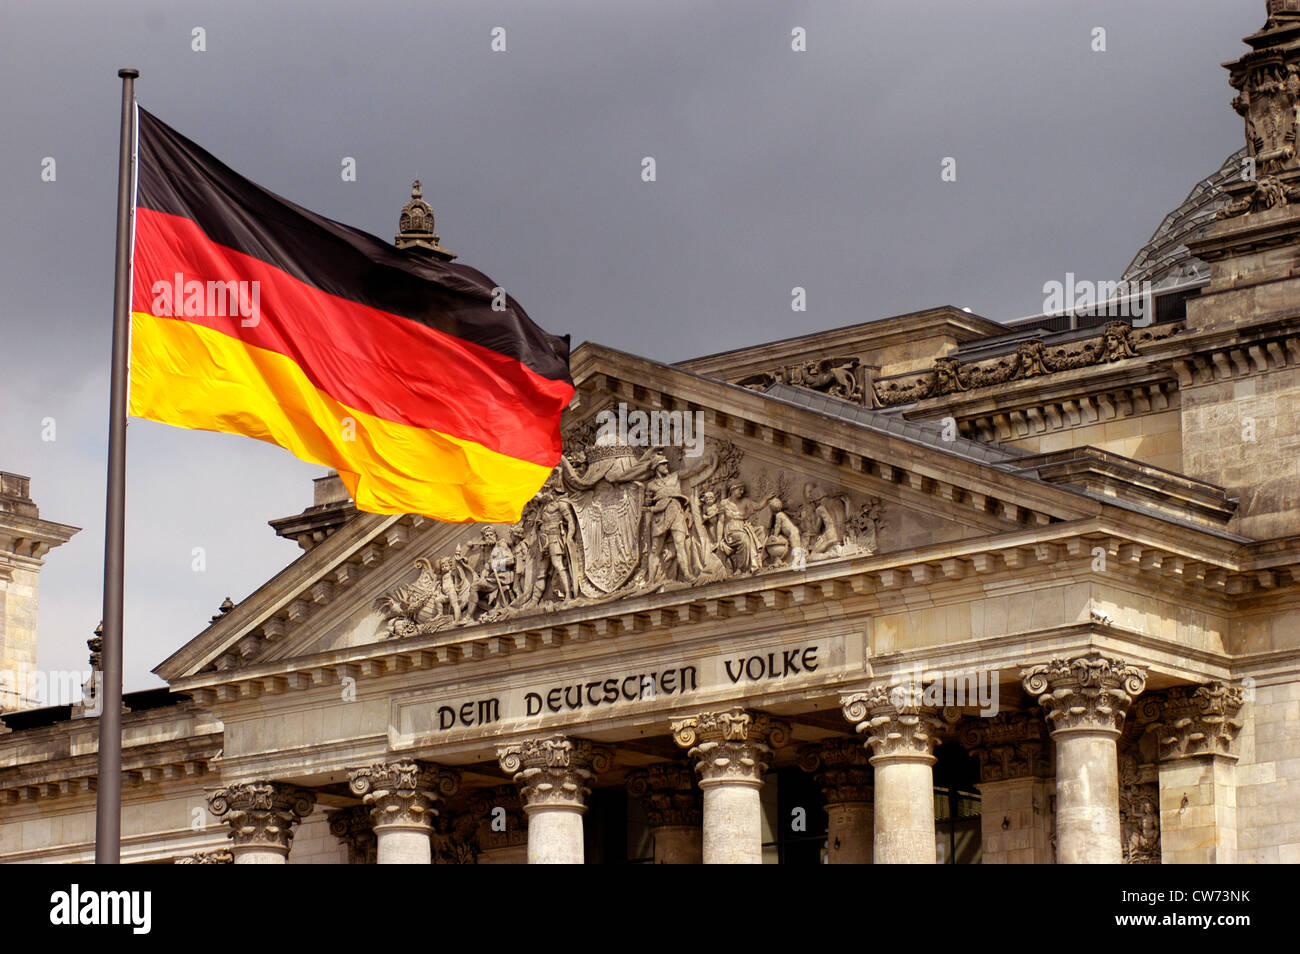 german flag in front of the Reichstag, 'dem deutschen Volke', Germany, Berlin - Stock Image